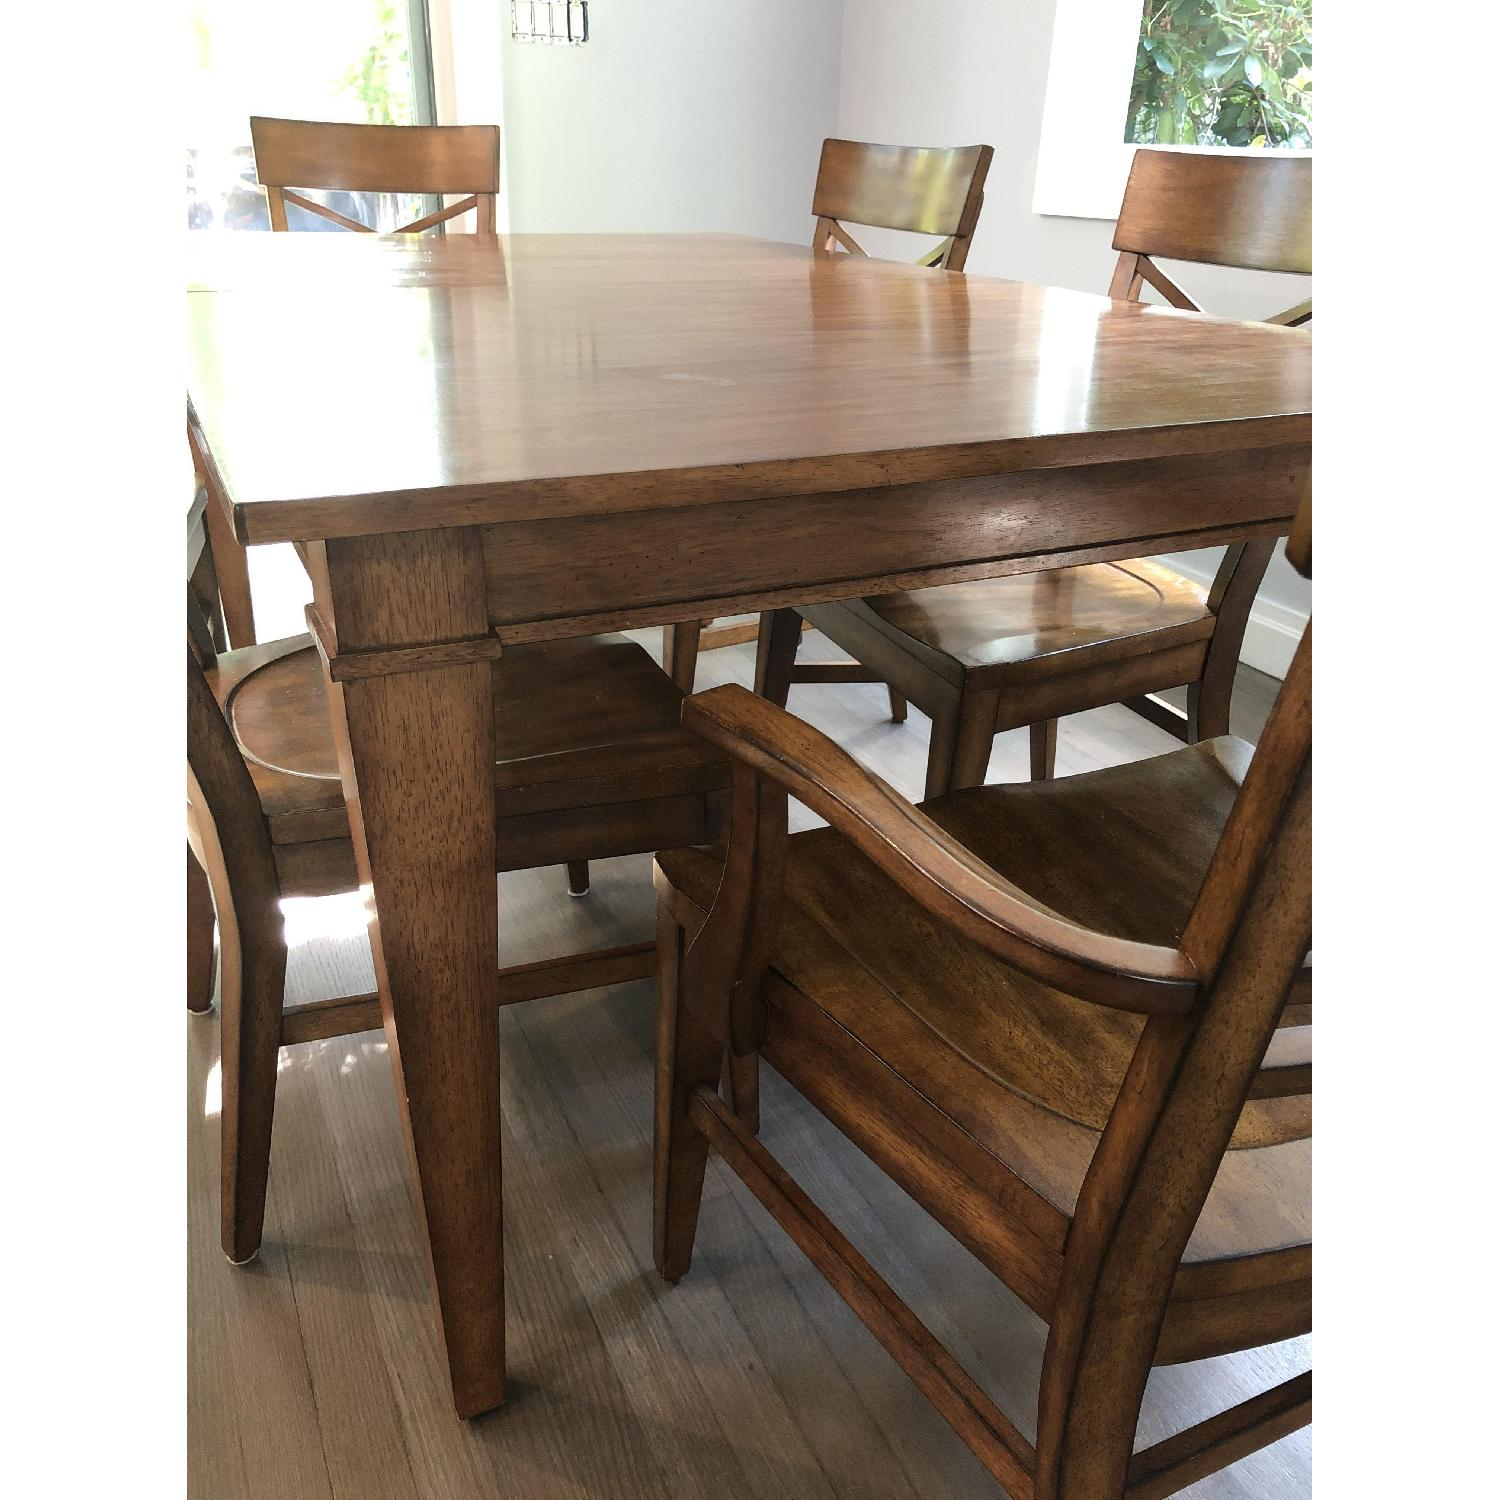 Ethan Allen Extension Dining Table w/ 6 Chairs - image-5